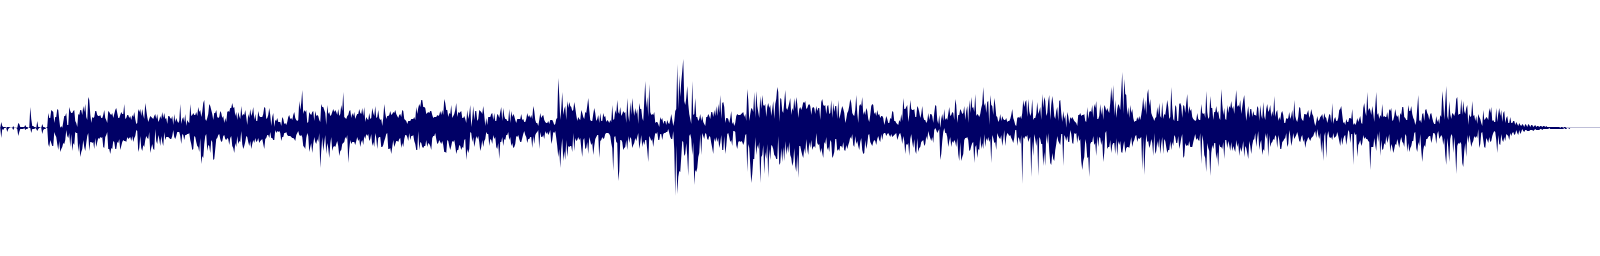 waveform of track #111255